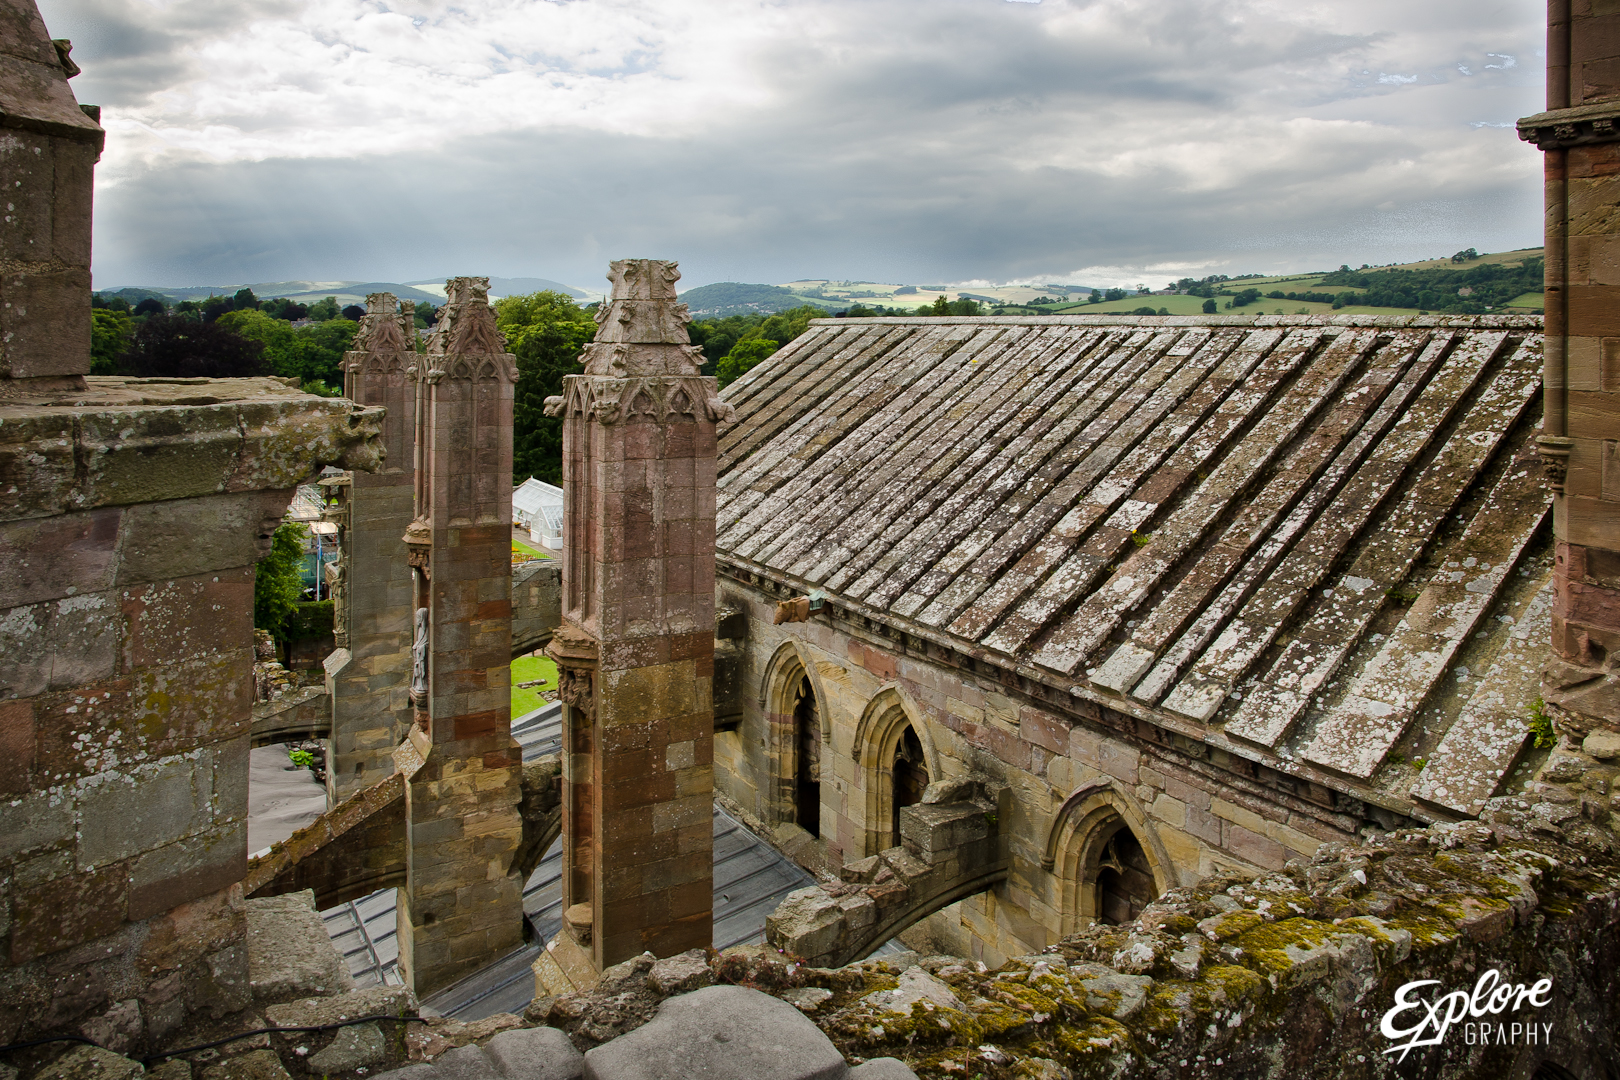 2015-08-05_hagen-hoppe-fotografie_travel_scotland_409